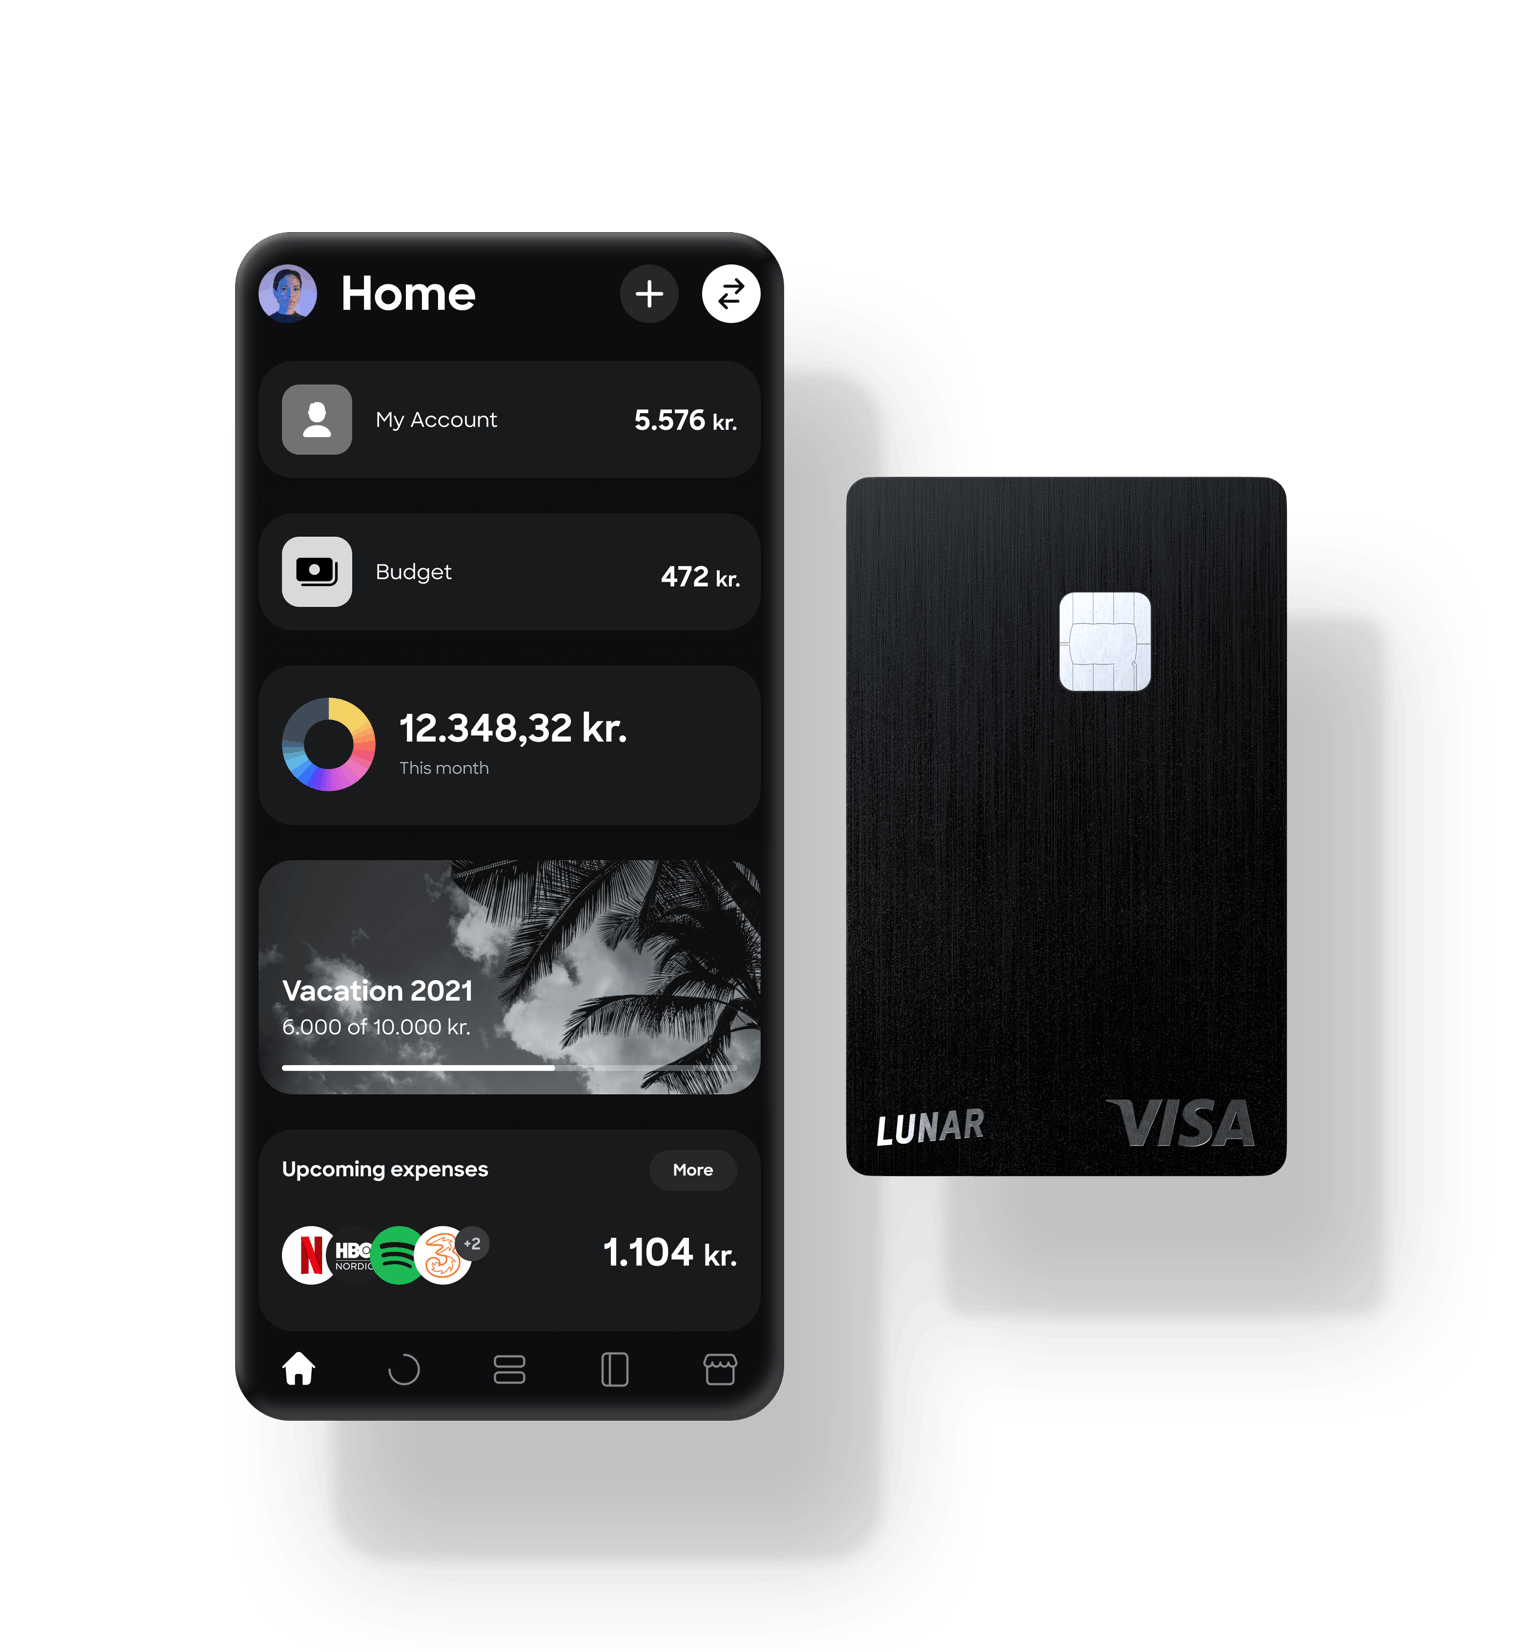 Denmark's best banking app and Denmark's first metal card